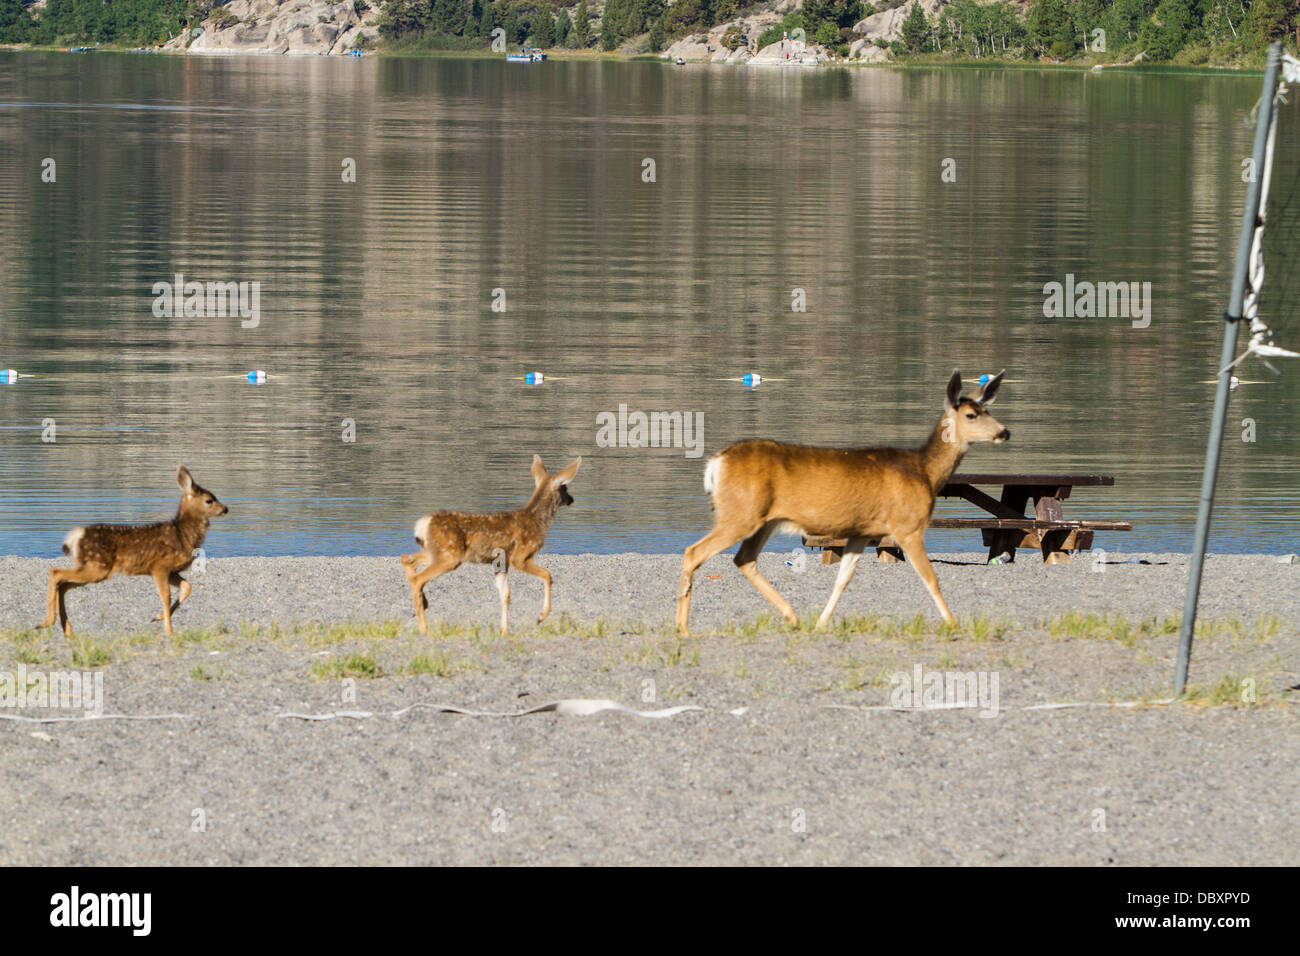 a-california-mule-deer-doe-and-her-fawns-walk-along-the-swimming-beach-DBXPYD.jpg